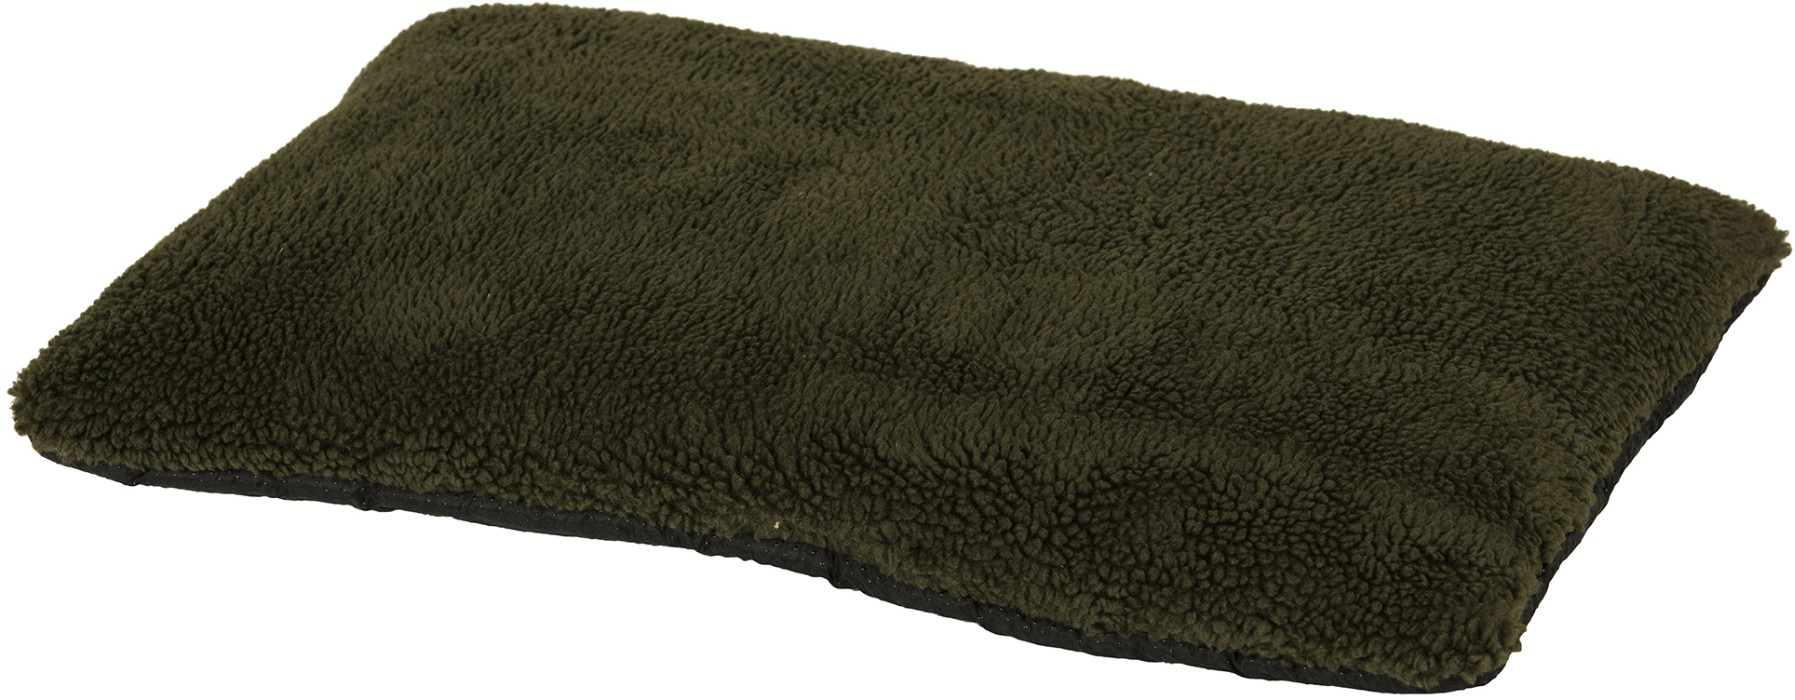 Deerhunter Dog Blanket Fibre Pile 70x50 cm